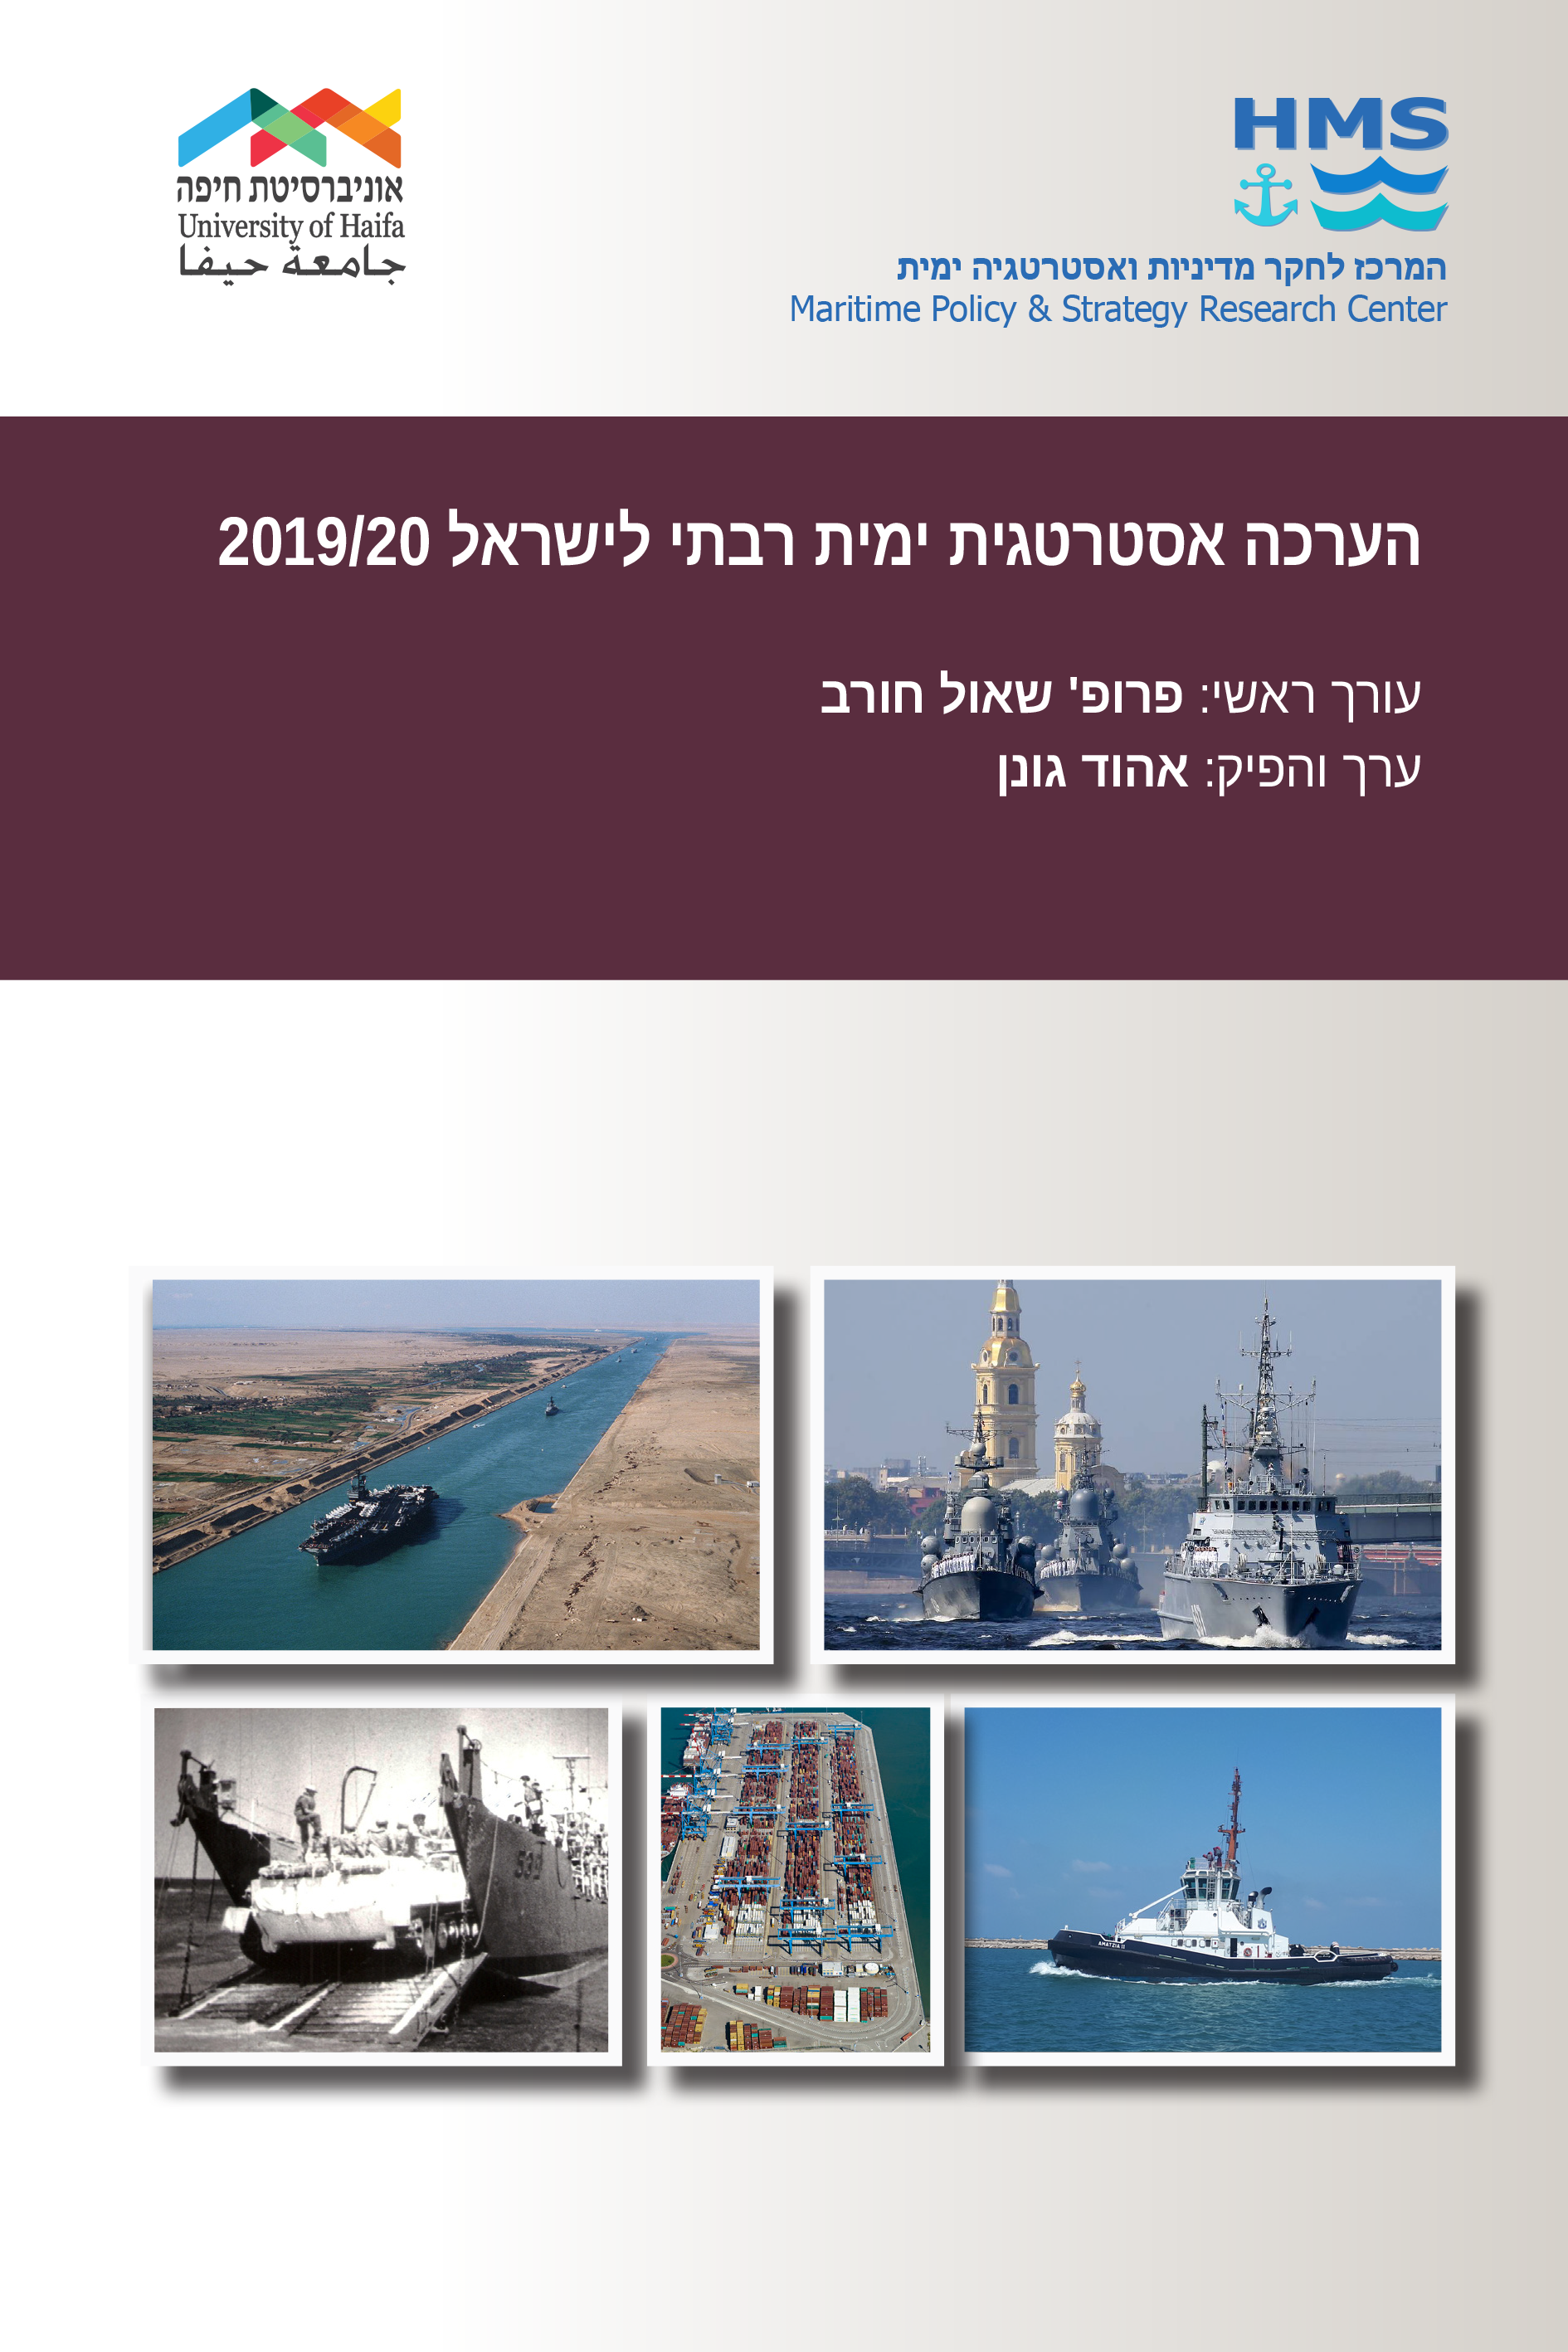 The Maritime Strategic Evaluation for Israel 2018/19